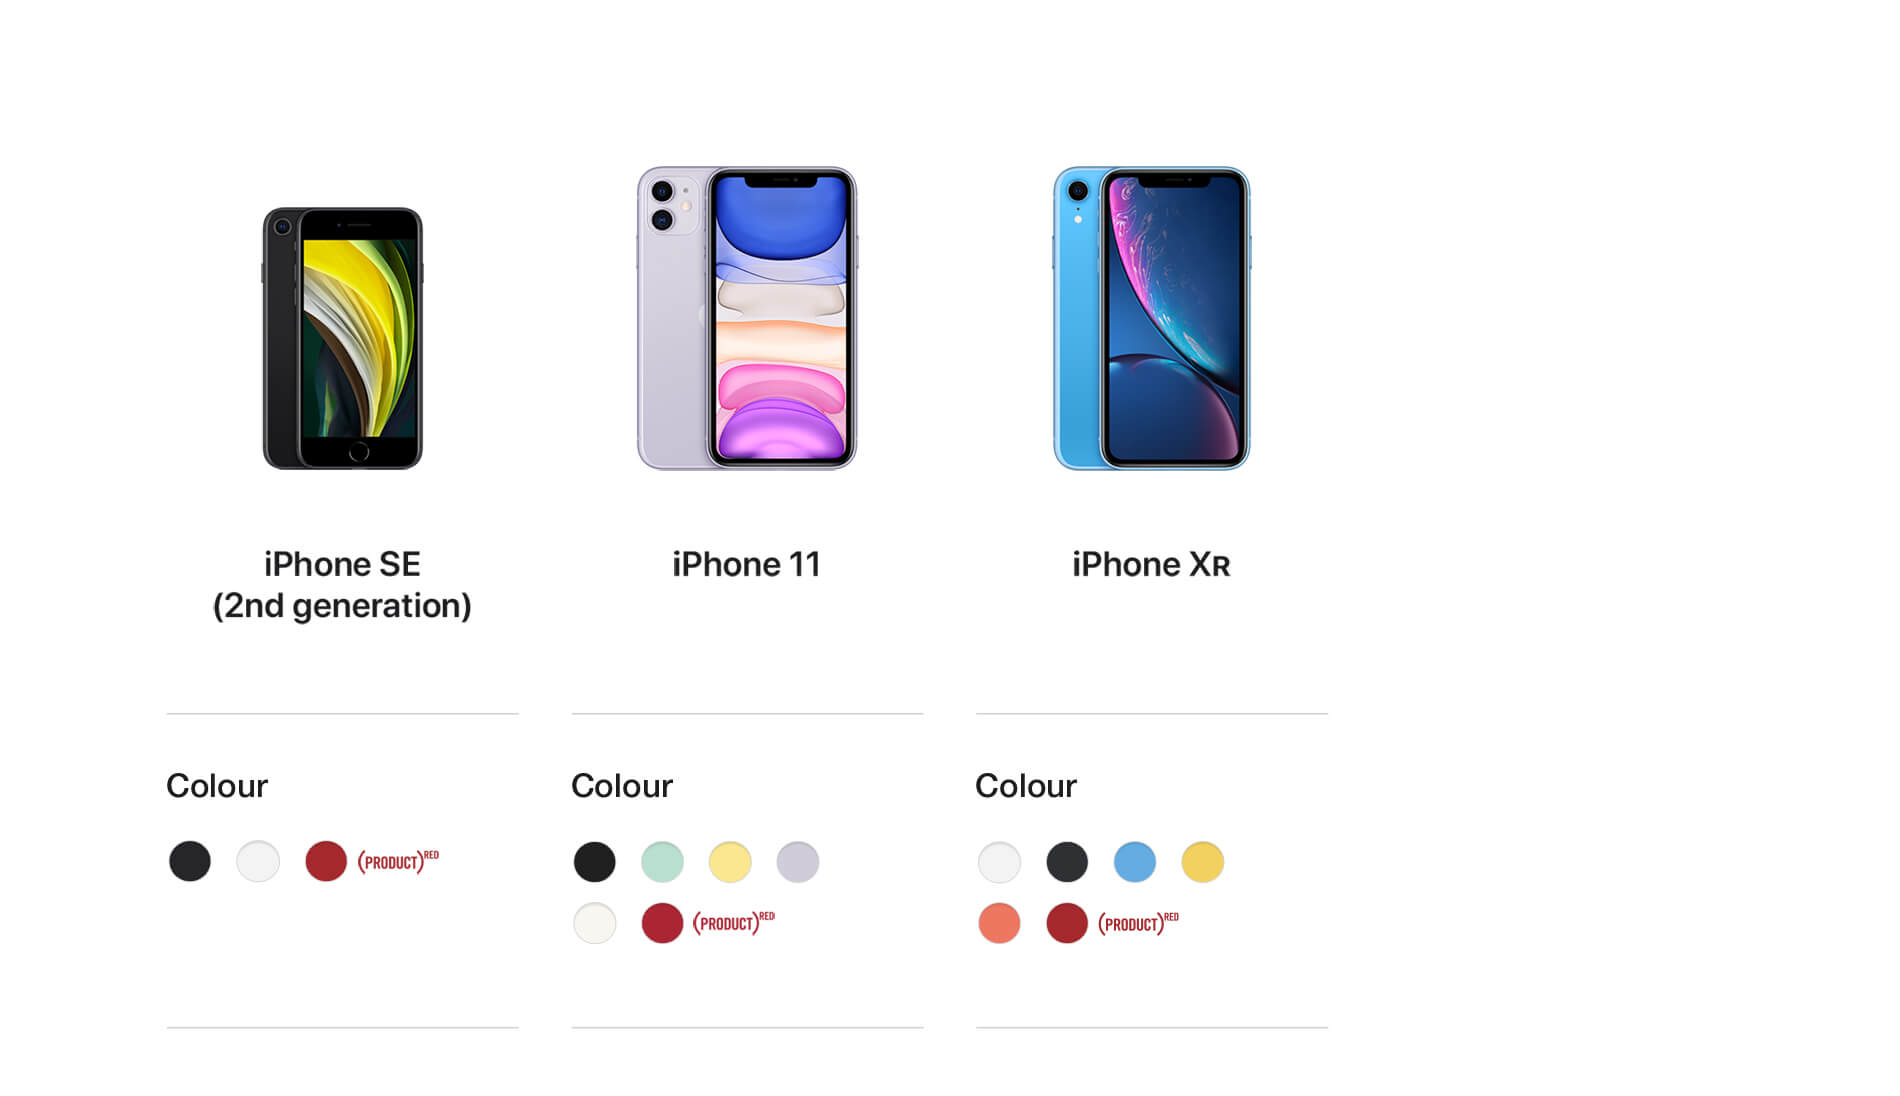 iPhone SE 2nd Gen, iPhone 11, iPhone XR